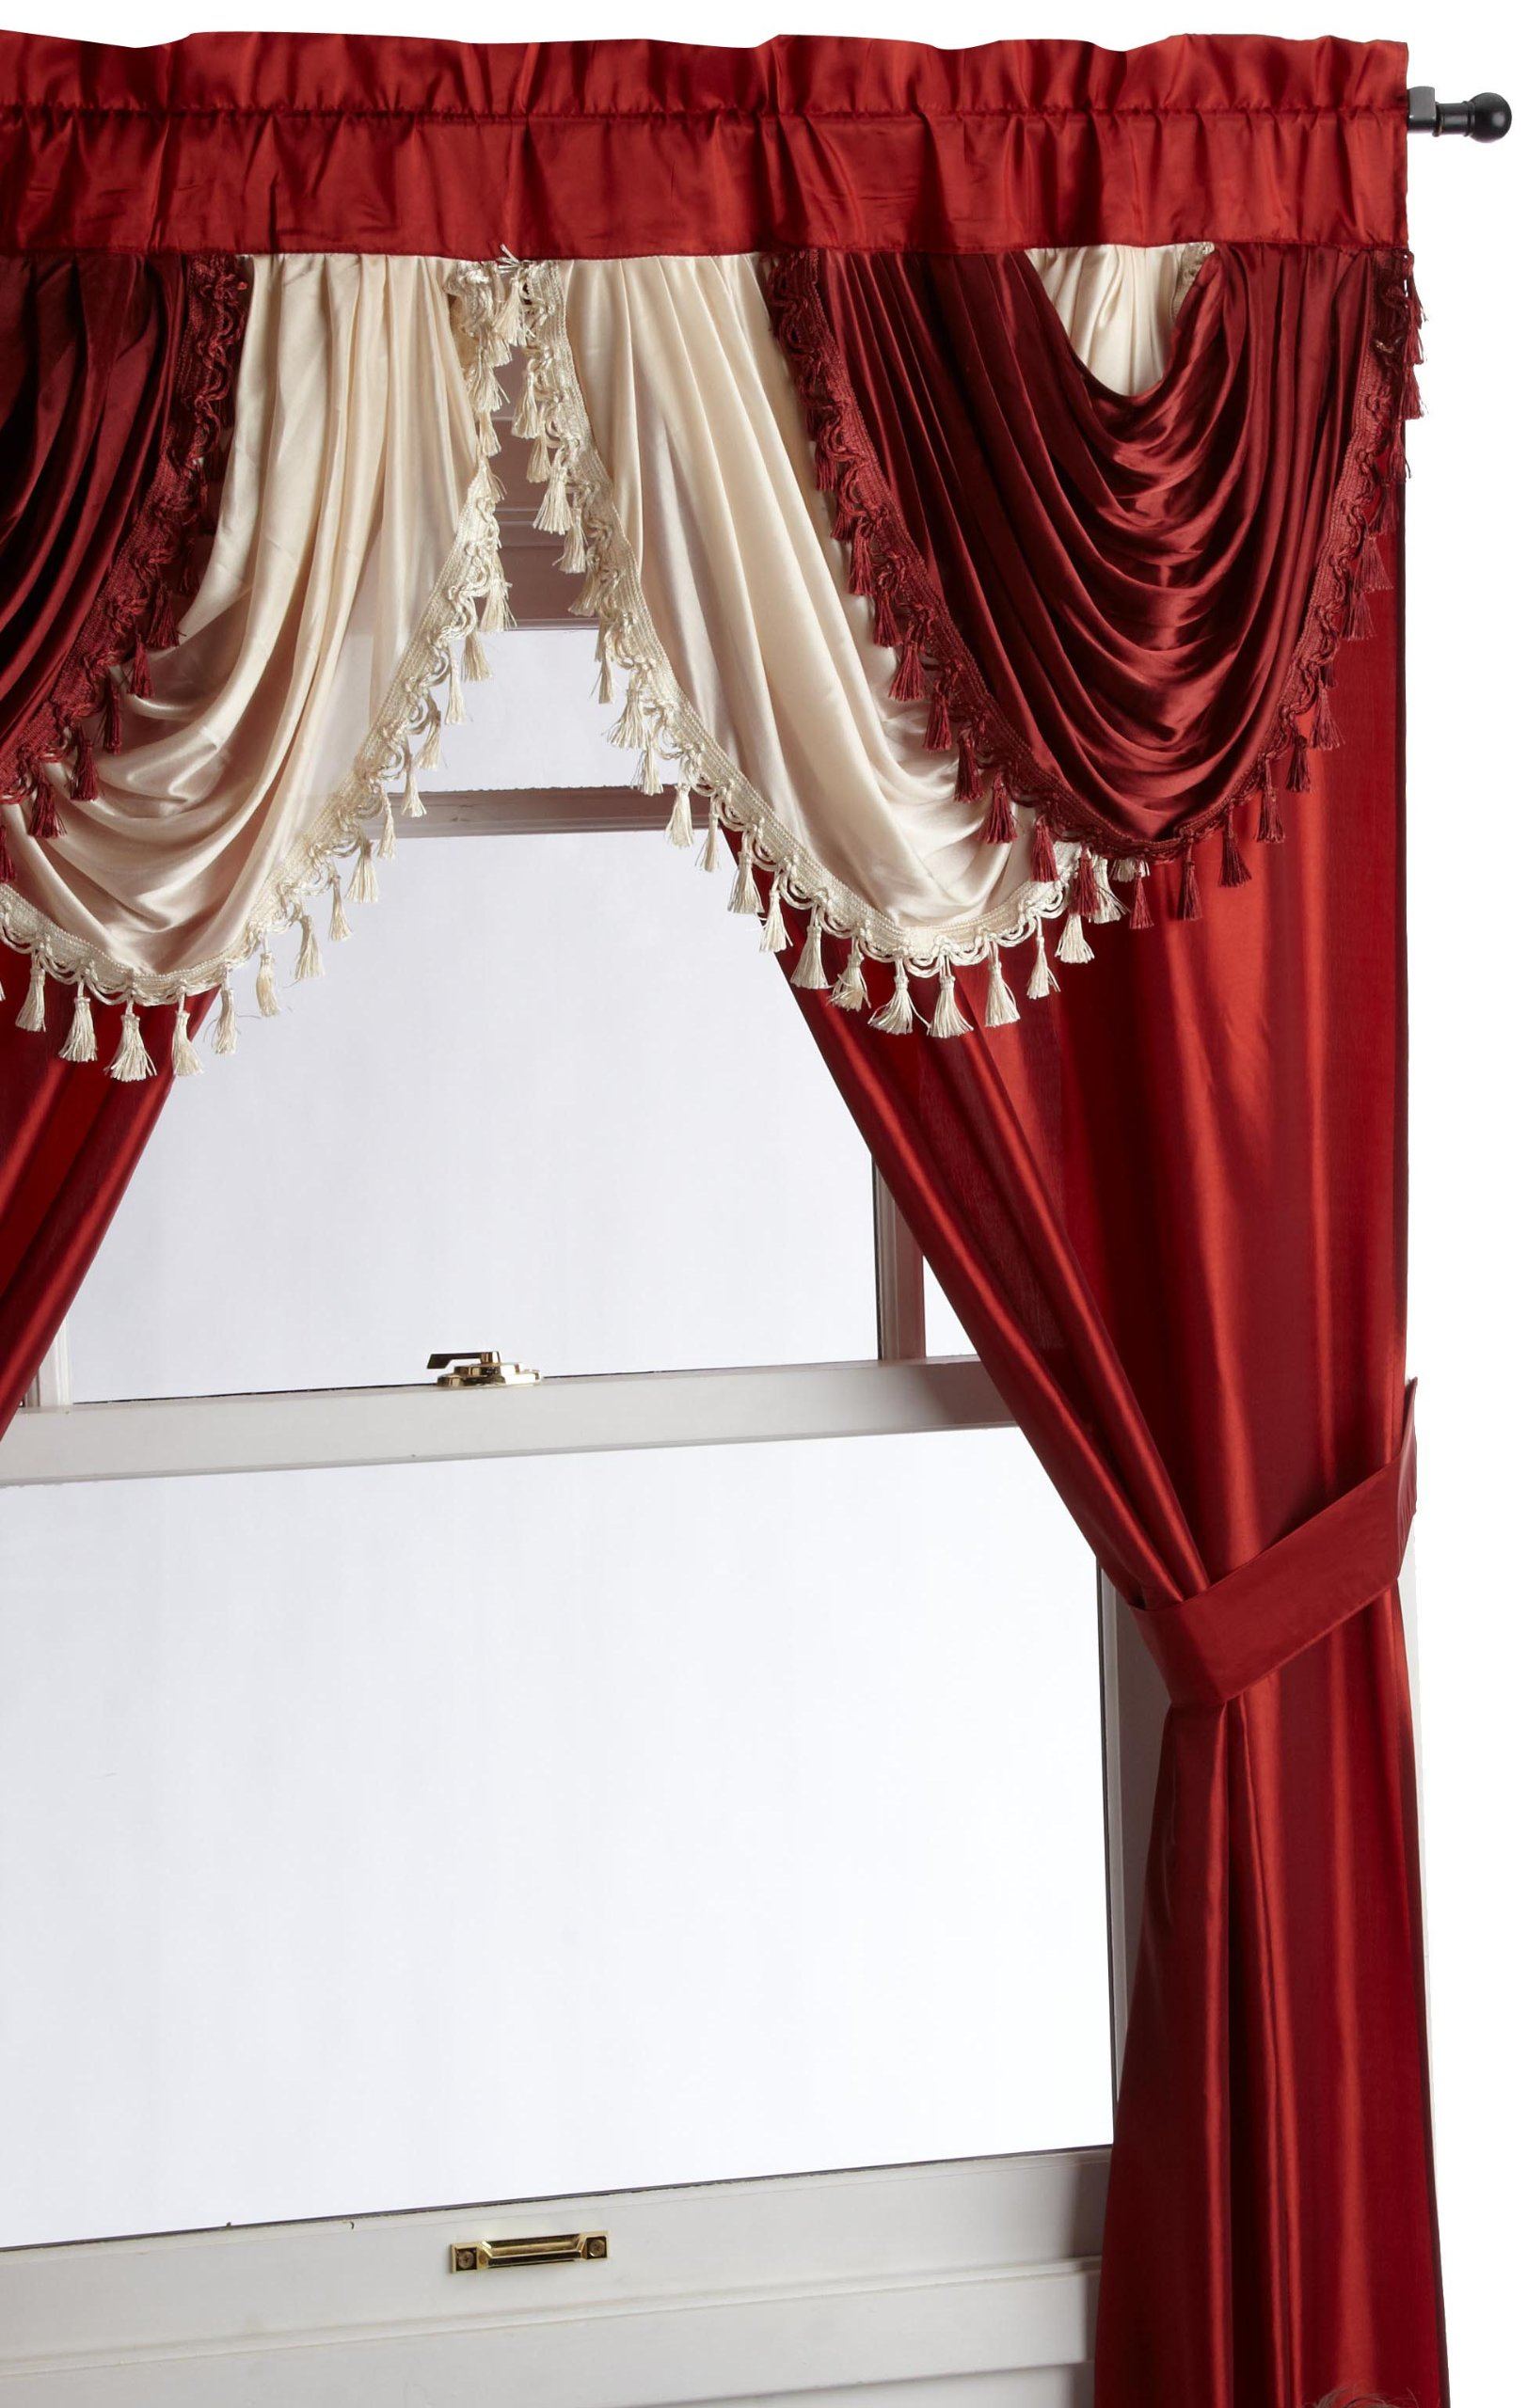 Regal Home Collections Amore 54 84-Inch Luxurious 5PC Attached Valance, Brick Window Curtain Set by Regal Home Collections